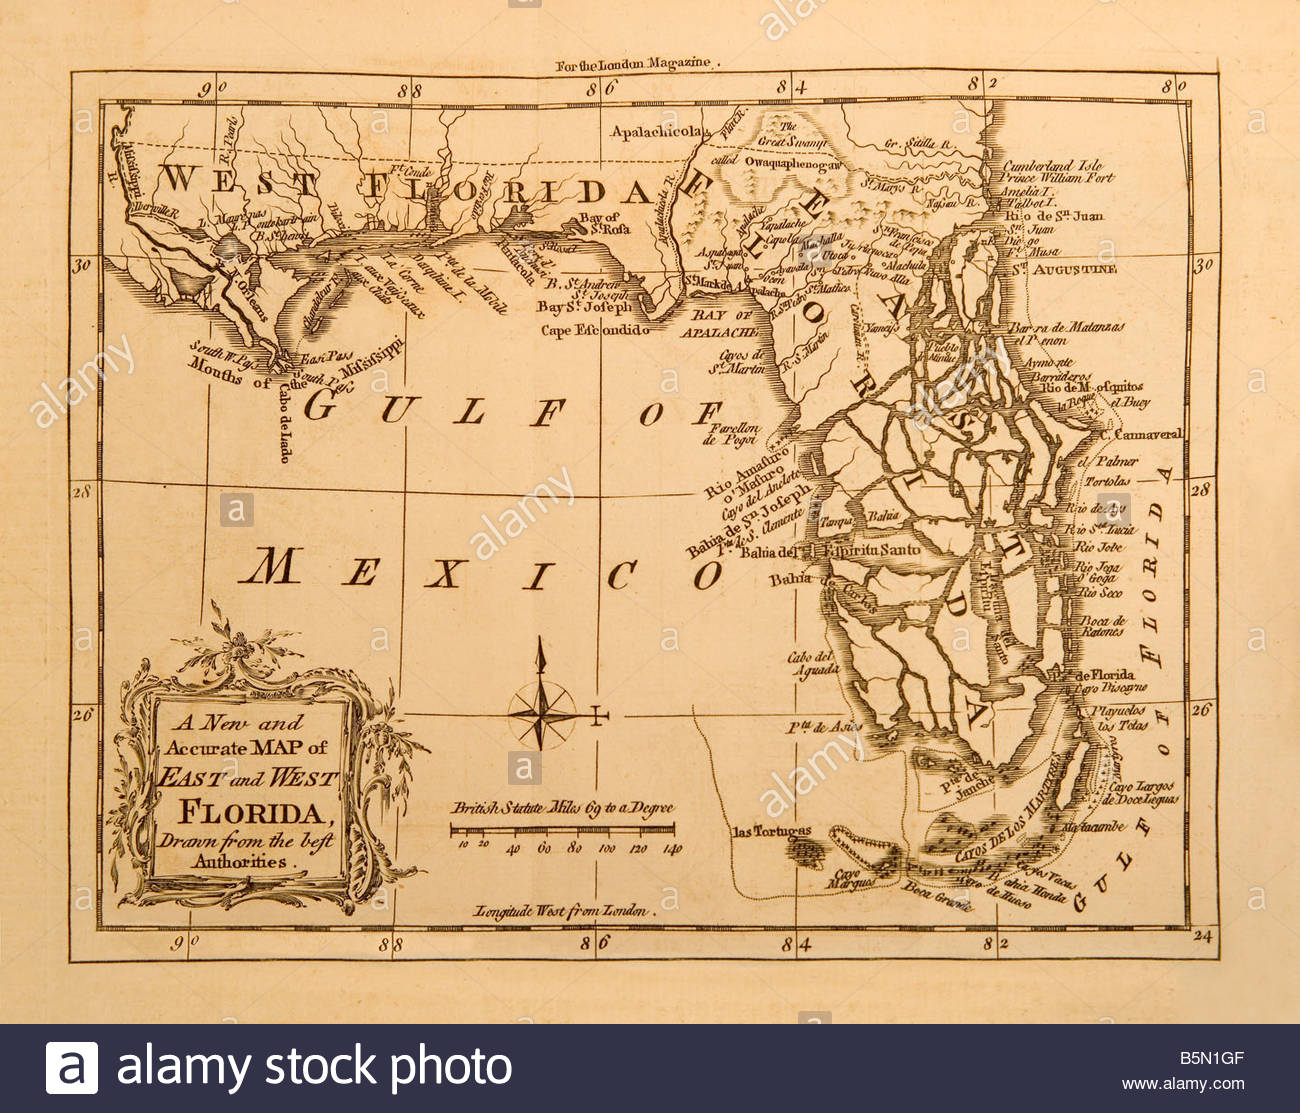 An Old Map Of The State Of Florida In America Made In 1764 For The - Florida Old Map